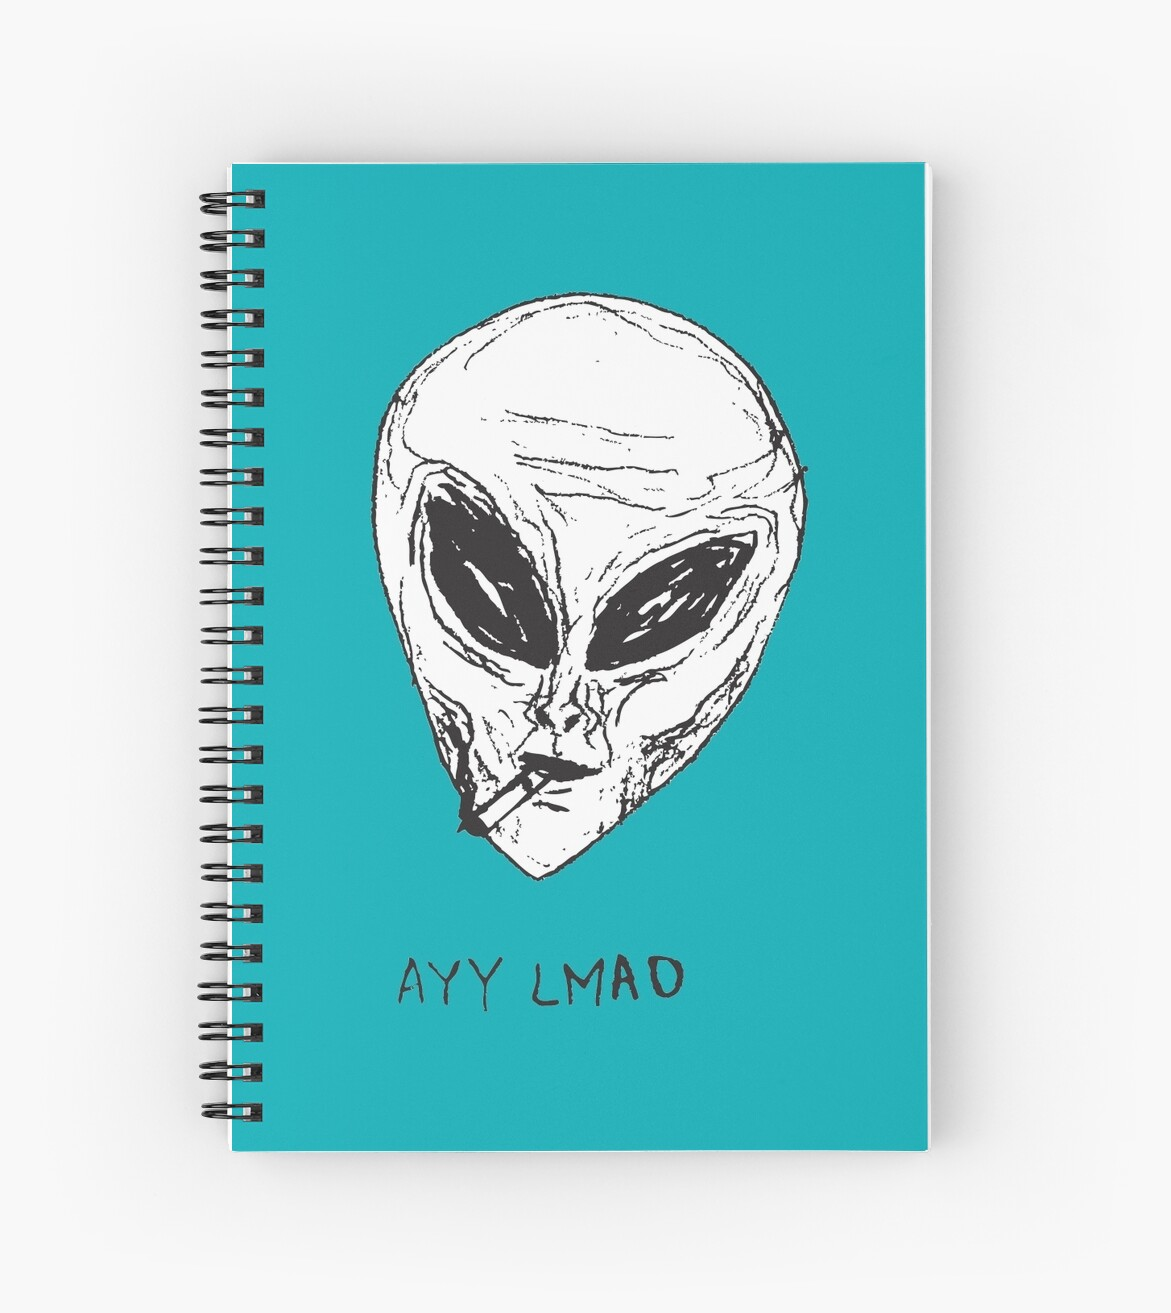 Ayy lmao by laurenaliice